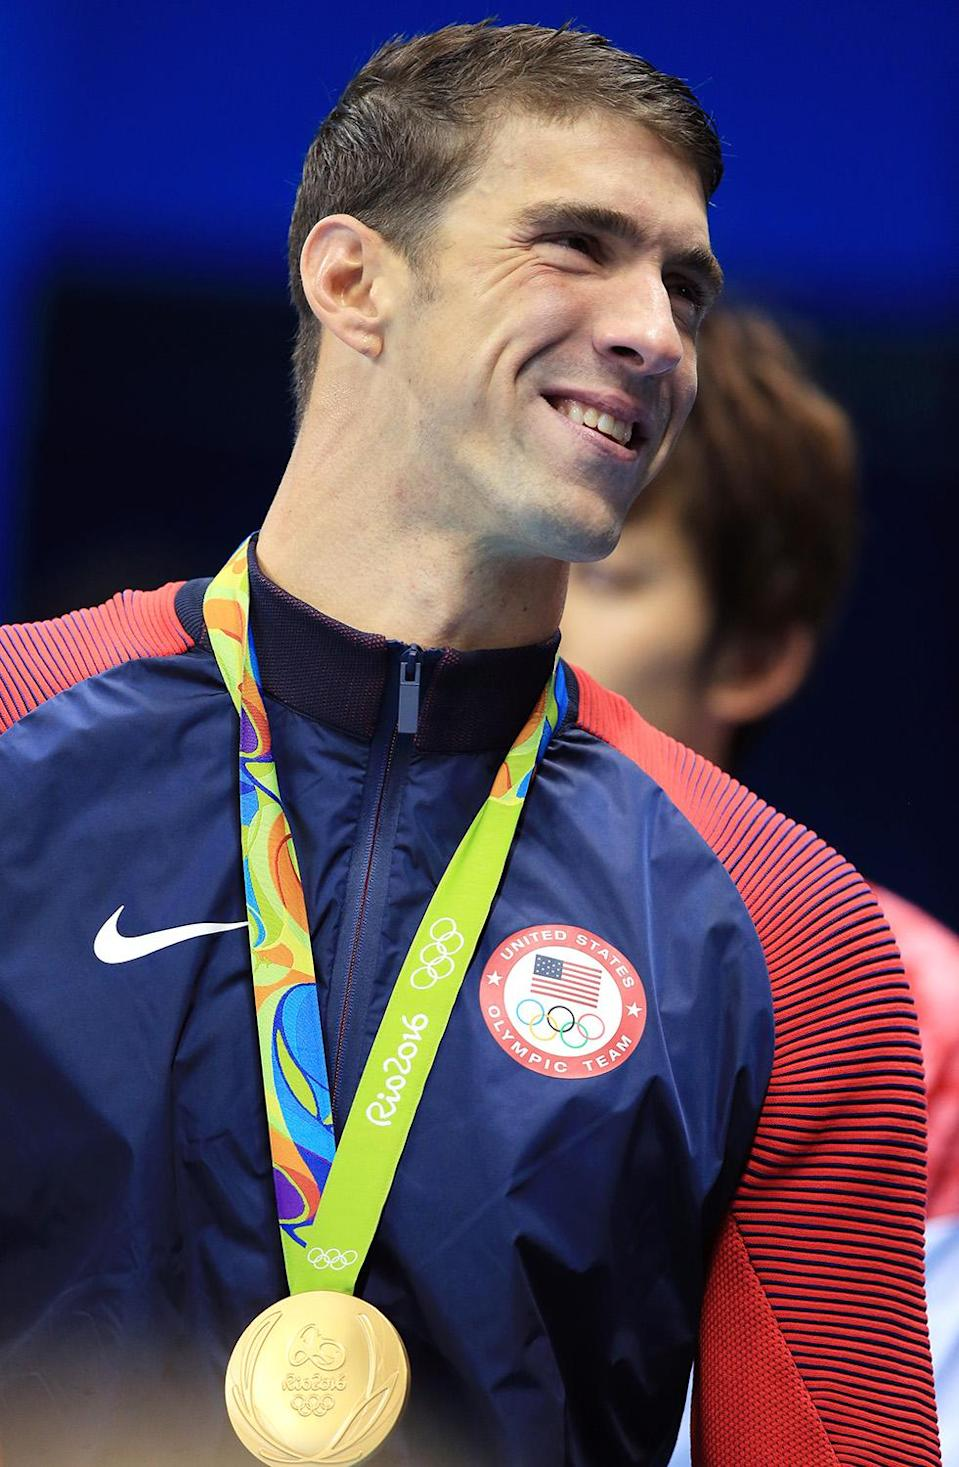 <p>Michael Phelps of the USA wins Gold in the Men's 200m Butterfly Final on Day 4 of the Rio 2016 Olympic Games at the Olympic Aquatics Stadium on August 9, 2016 in Rio de Janerio, Brazil. (Photo by Vaughn Ridley/Getty Images)</p>